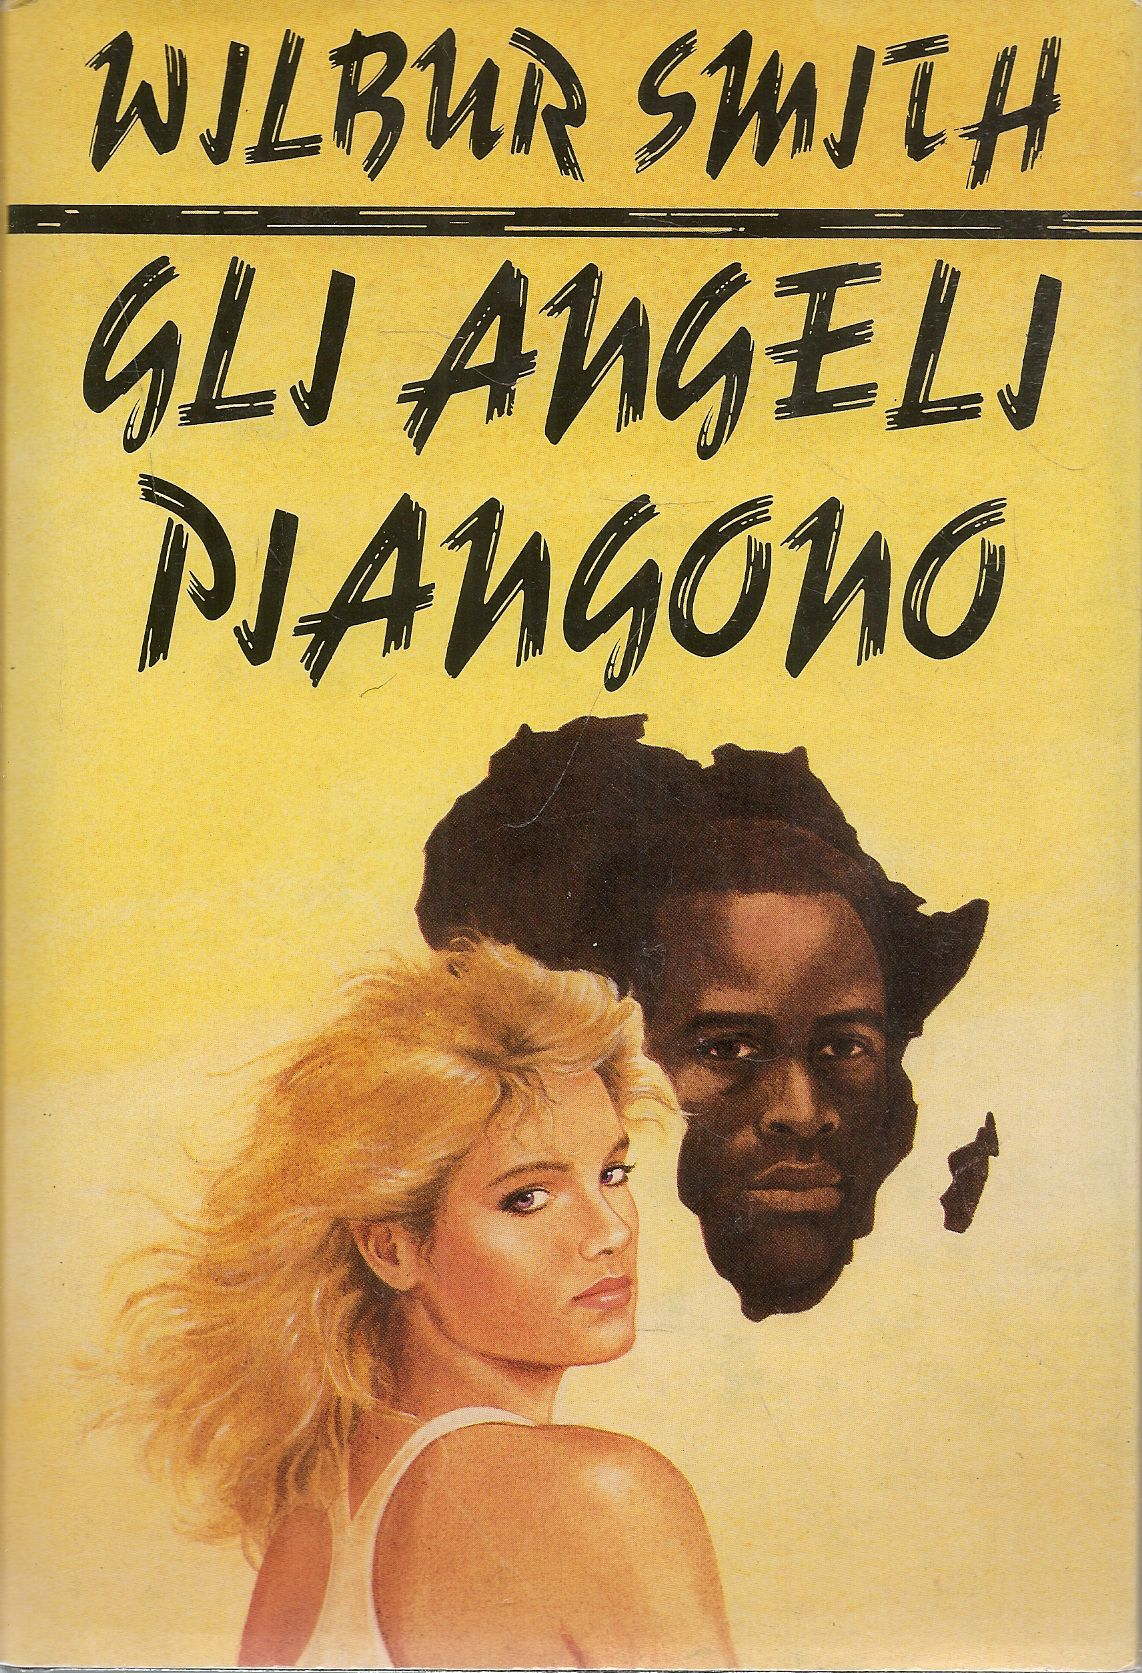 GLI ANGELI PIANGONO - WILBUR SMITH